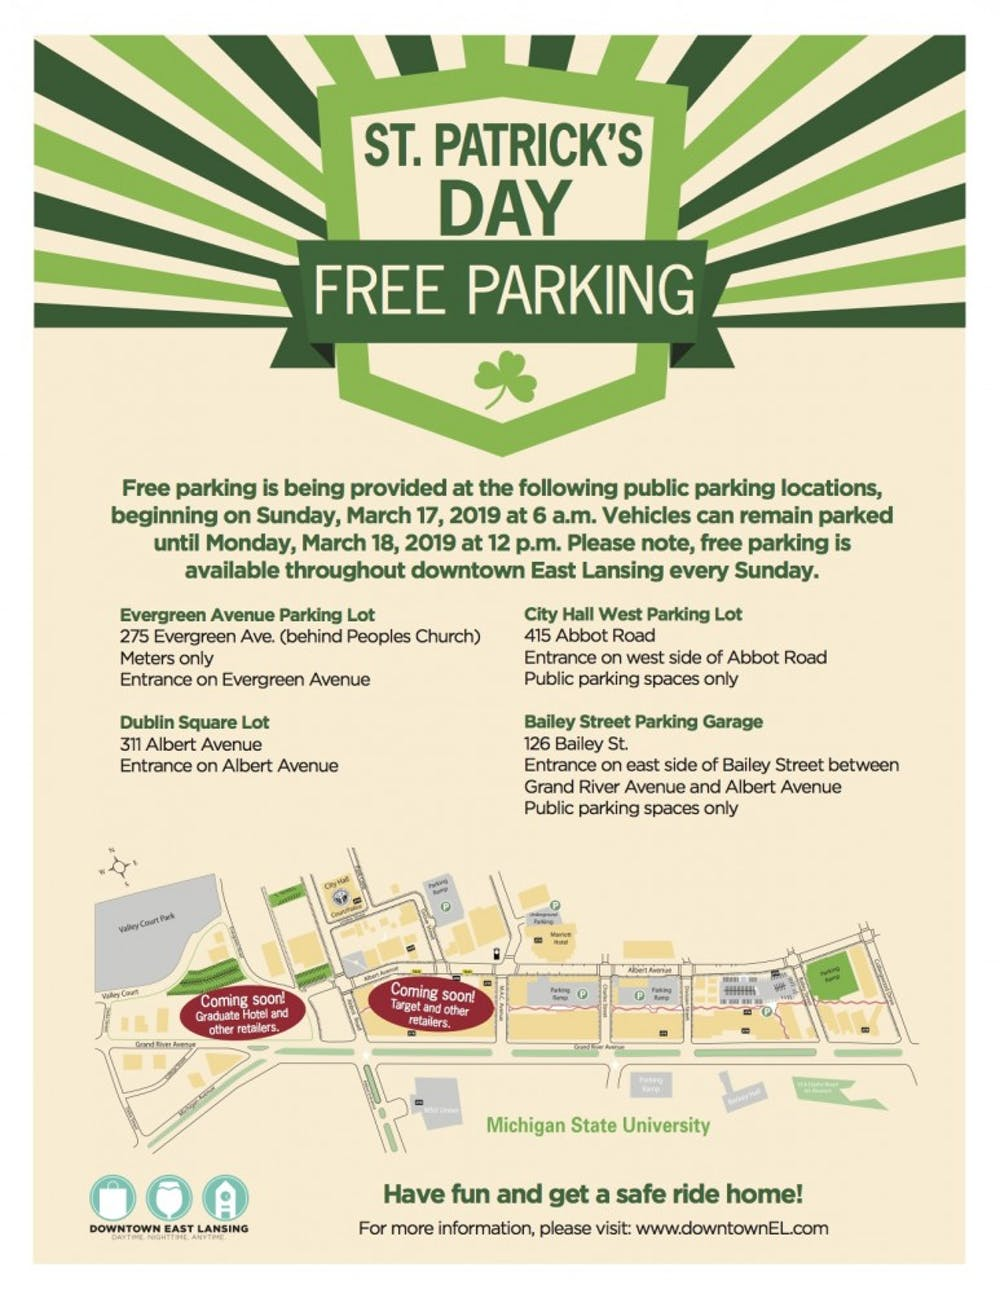 dpw-stpatty-freeparking-2019